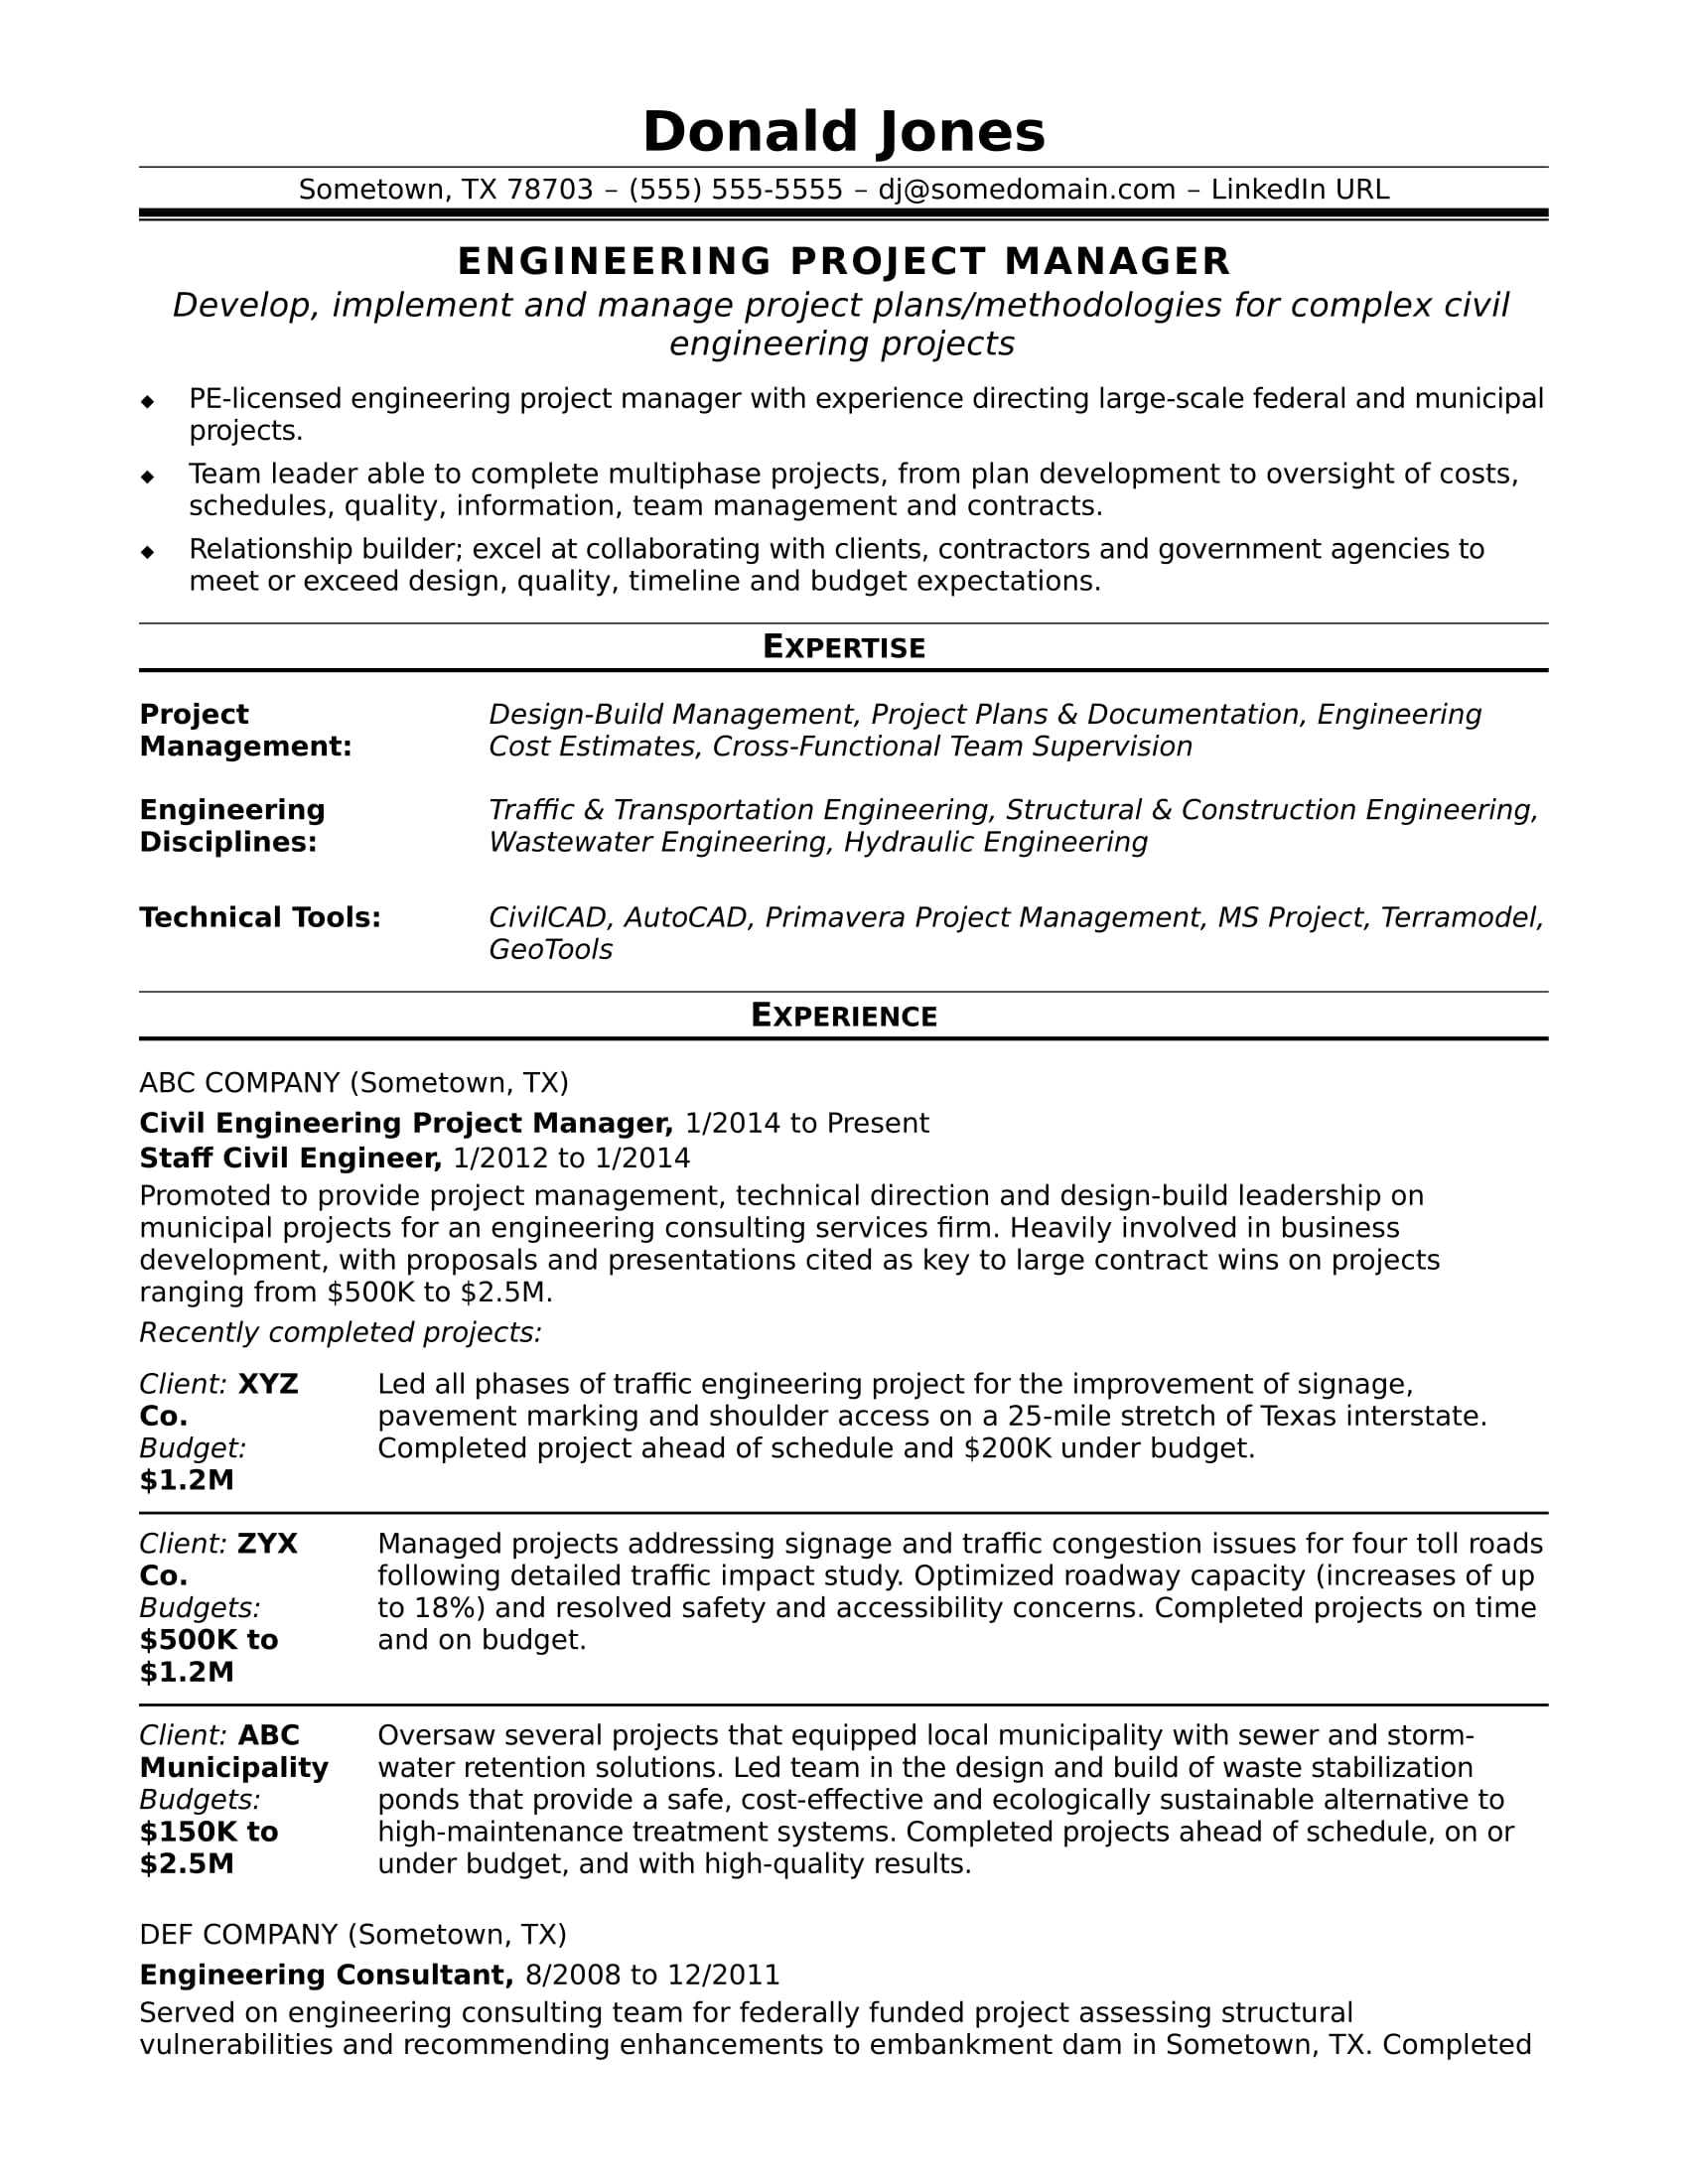 sample resume for a midlevel engineering project manager - Resume Samples Project Manager